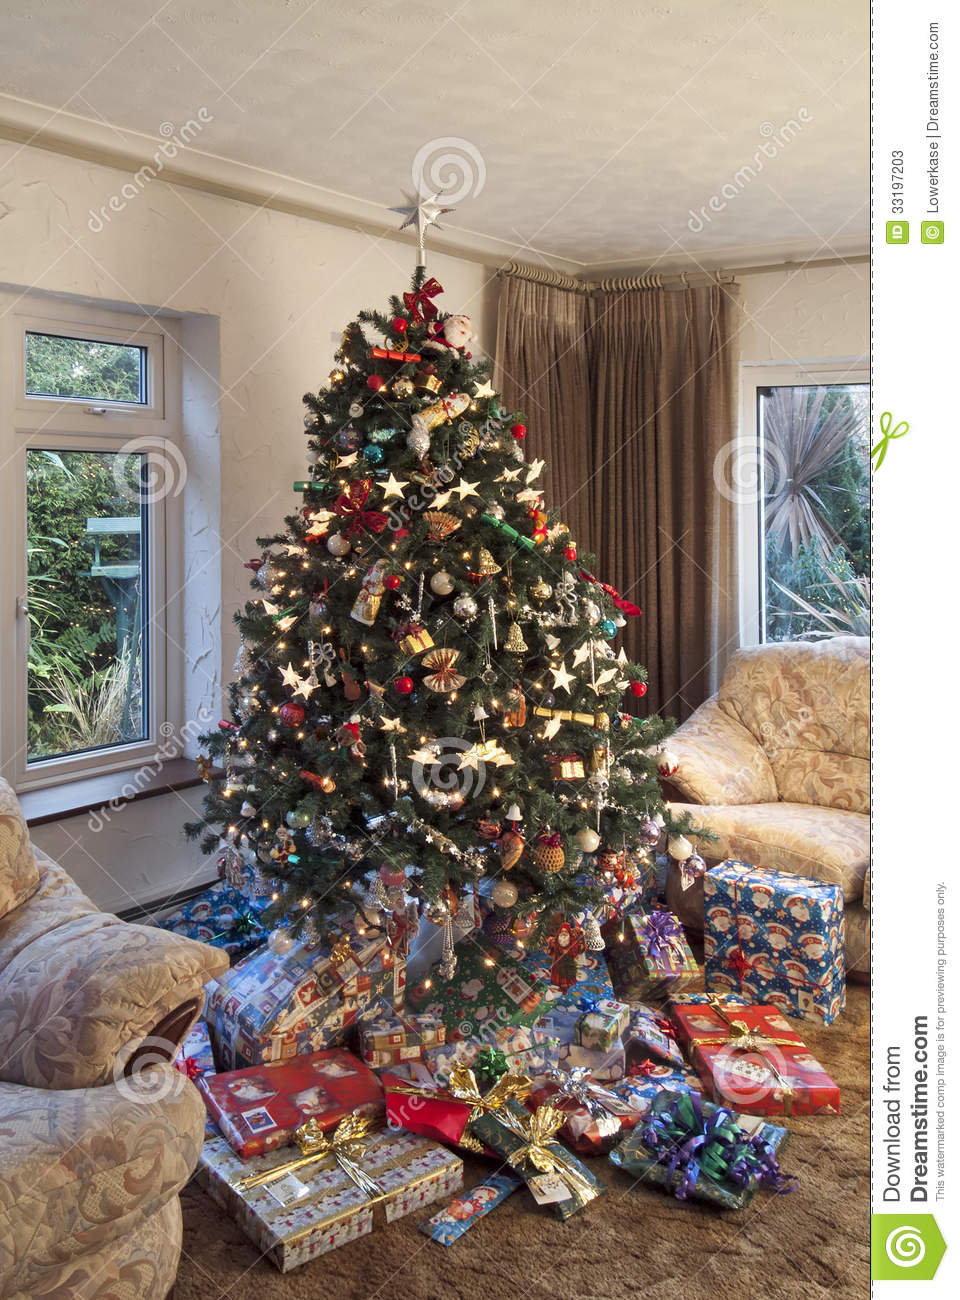 Christmas Tree In Room Setting Stock Image Image Of